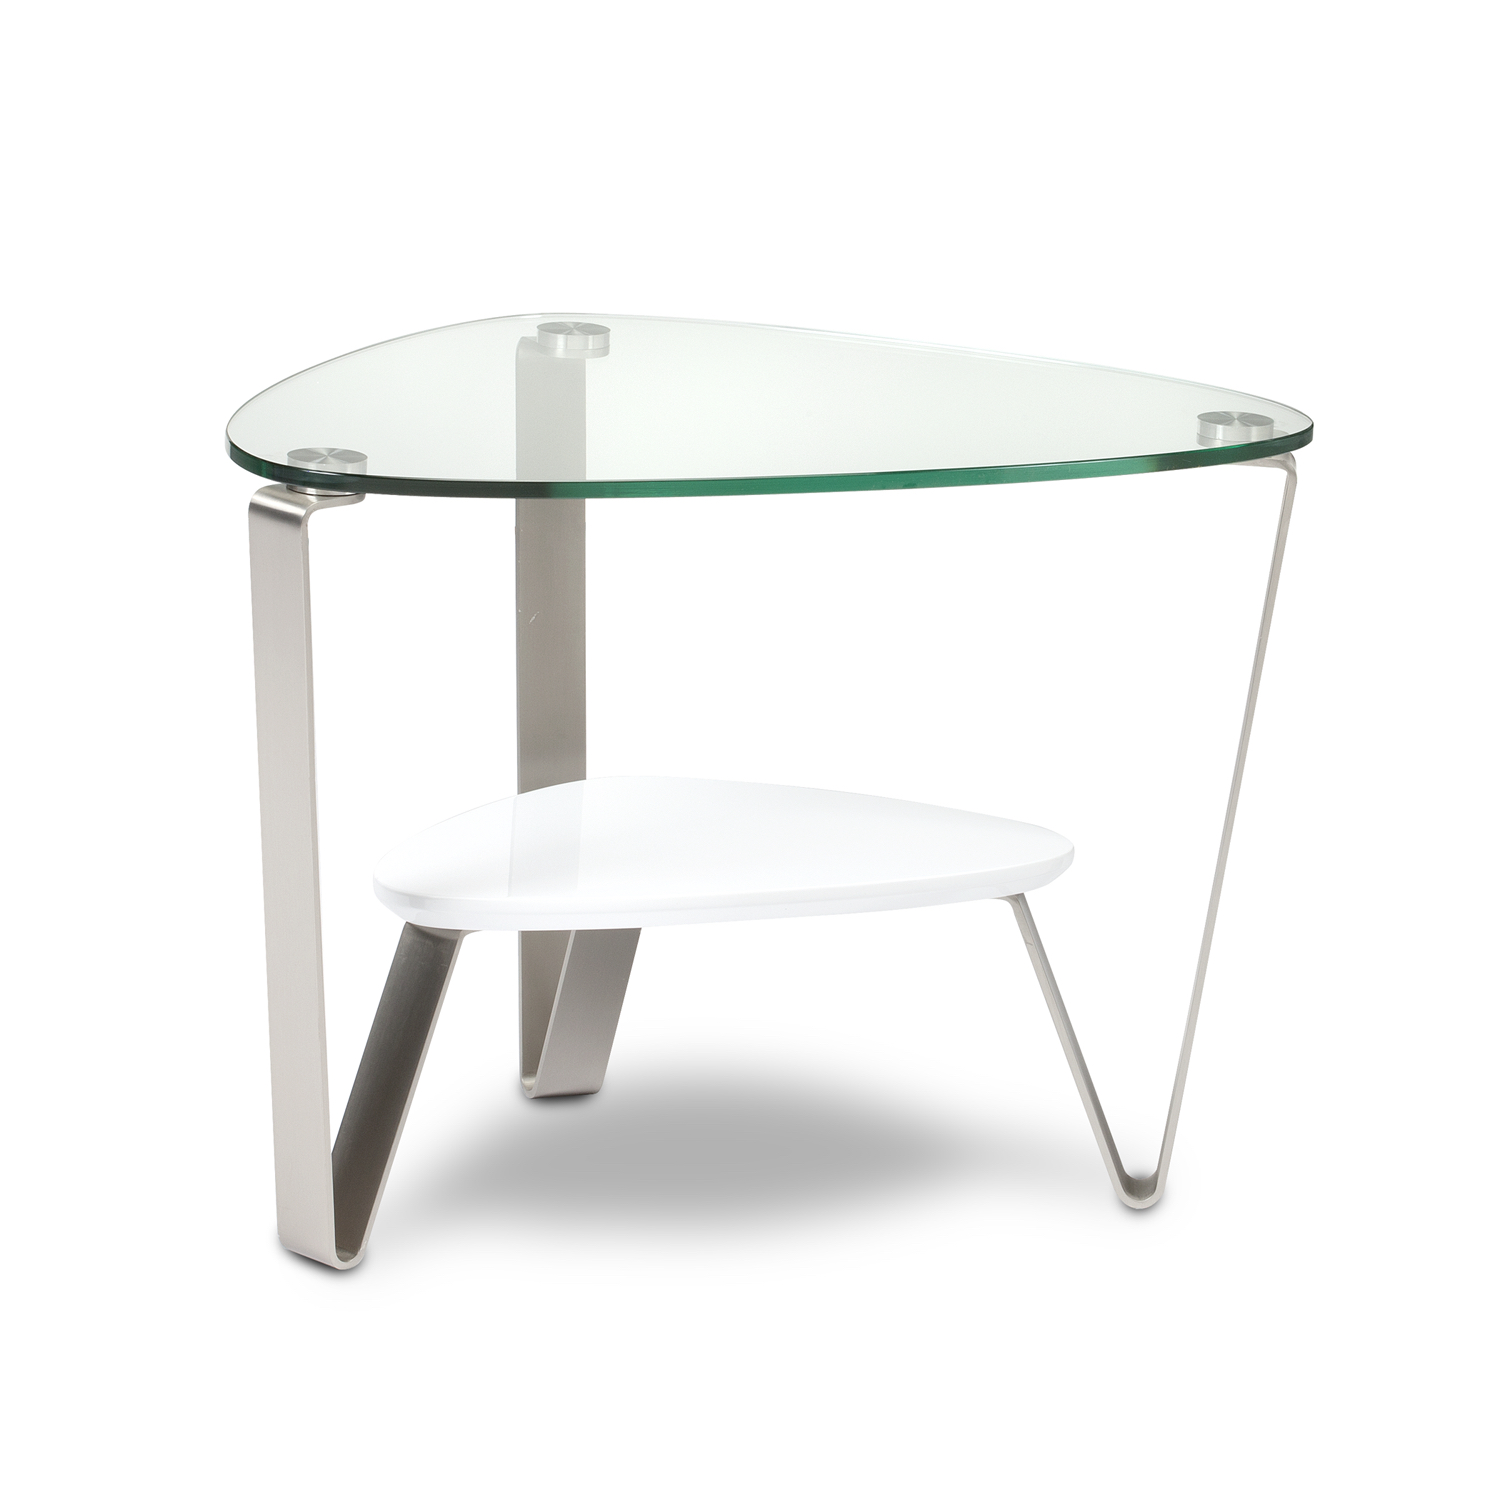 dino-1347-white-bdi-modern-coffee-table-1